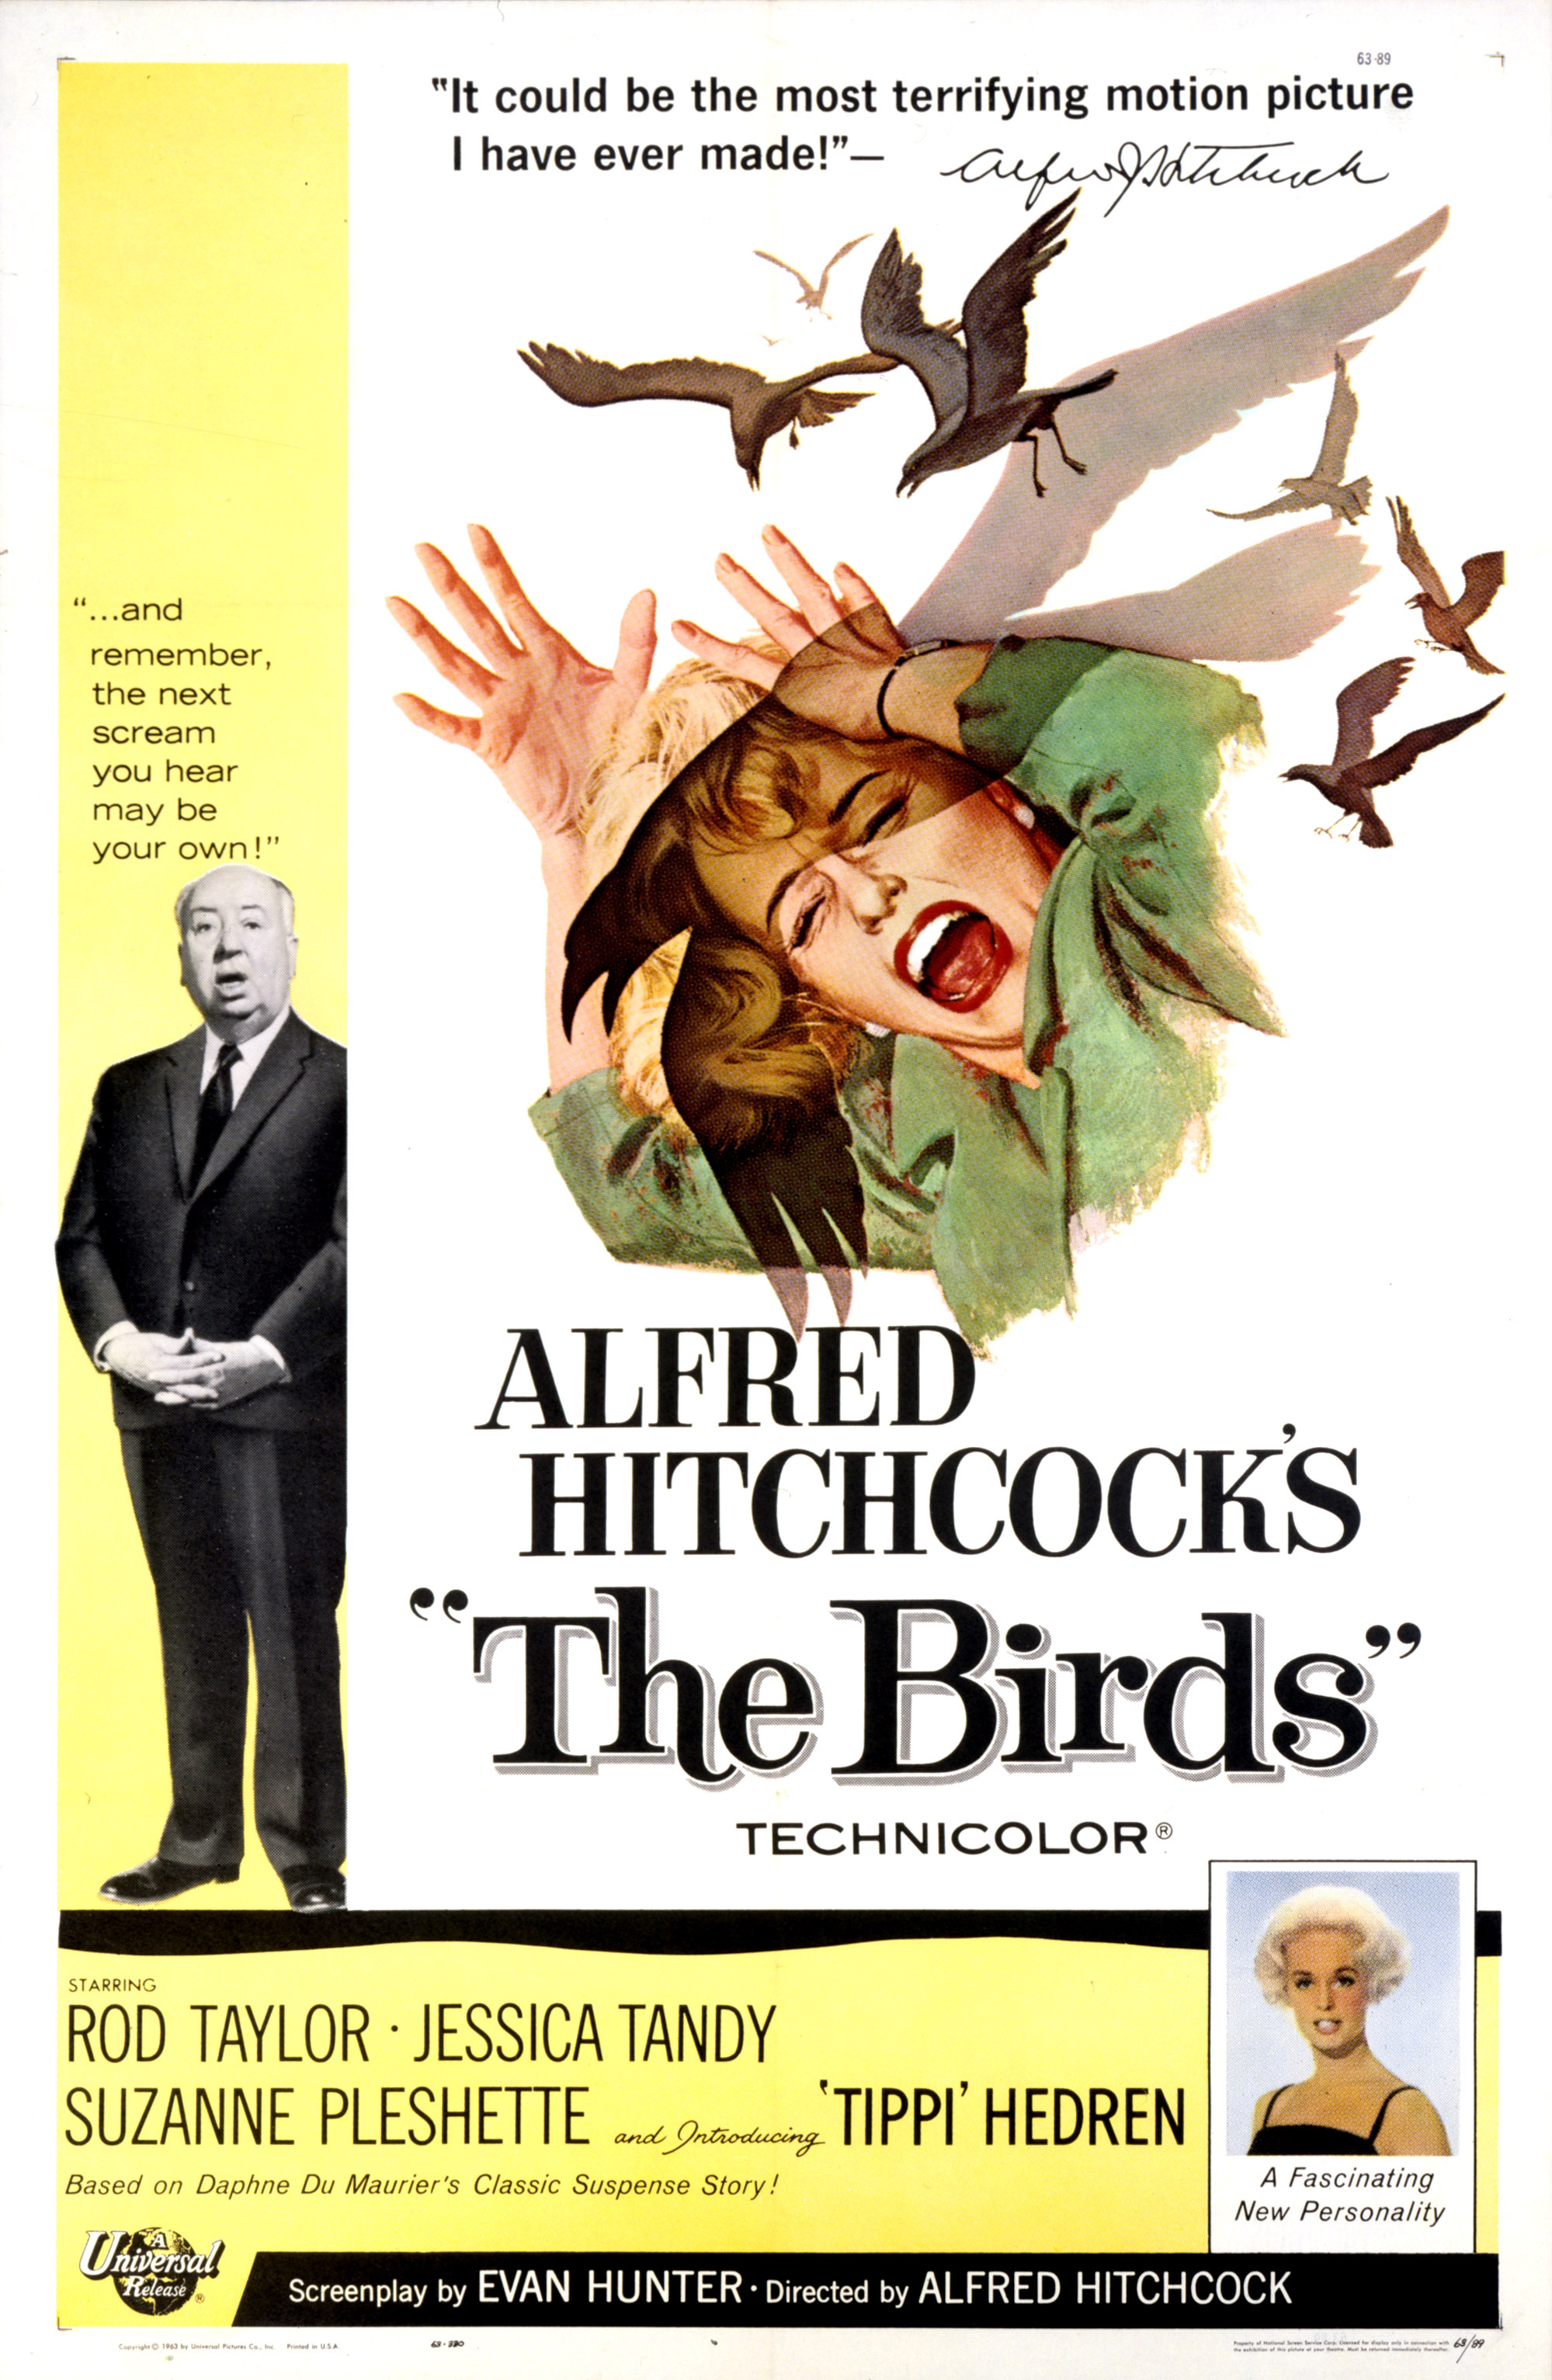 Alfred Hitchcock and Tippi Hedren in The Birds (1963)